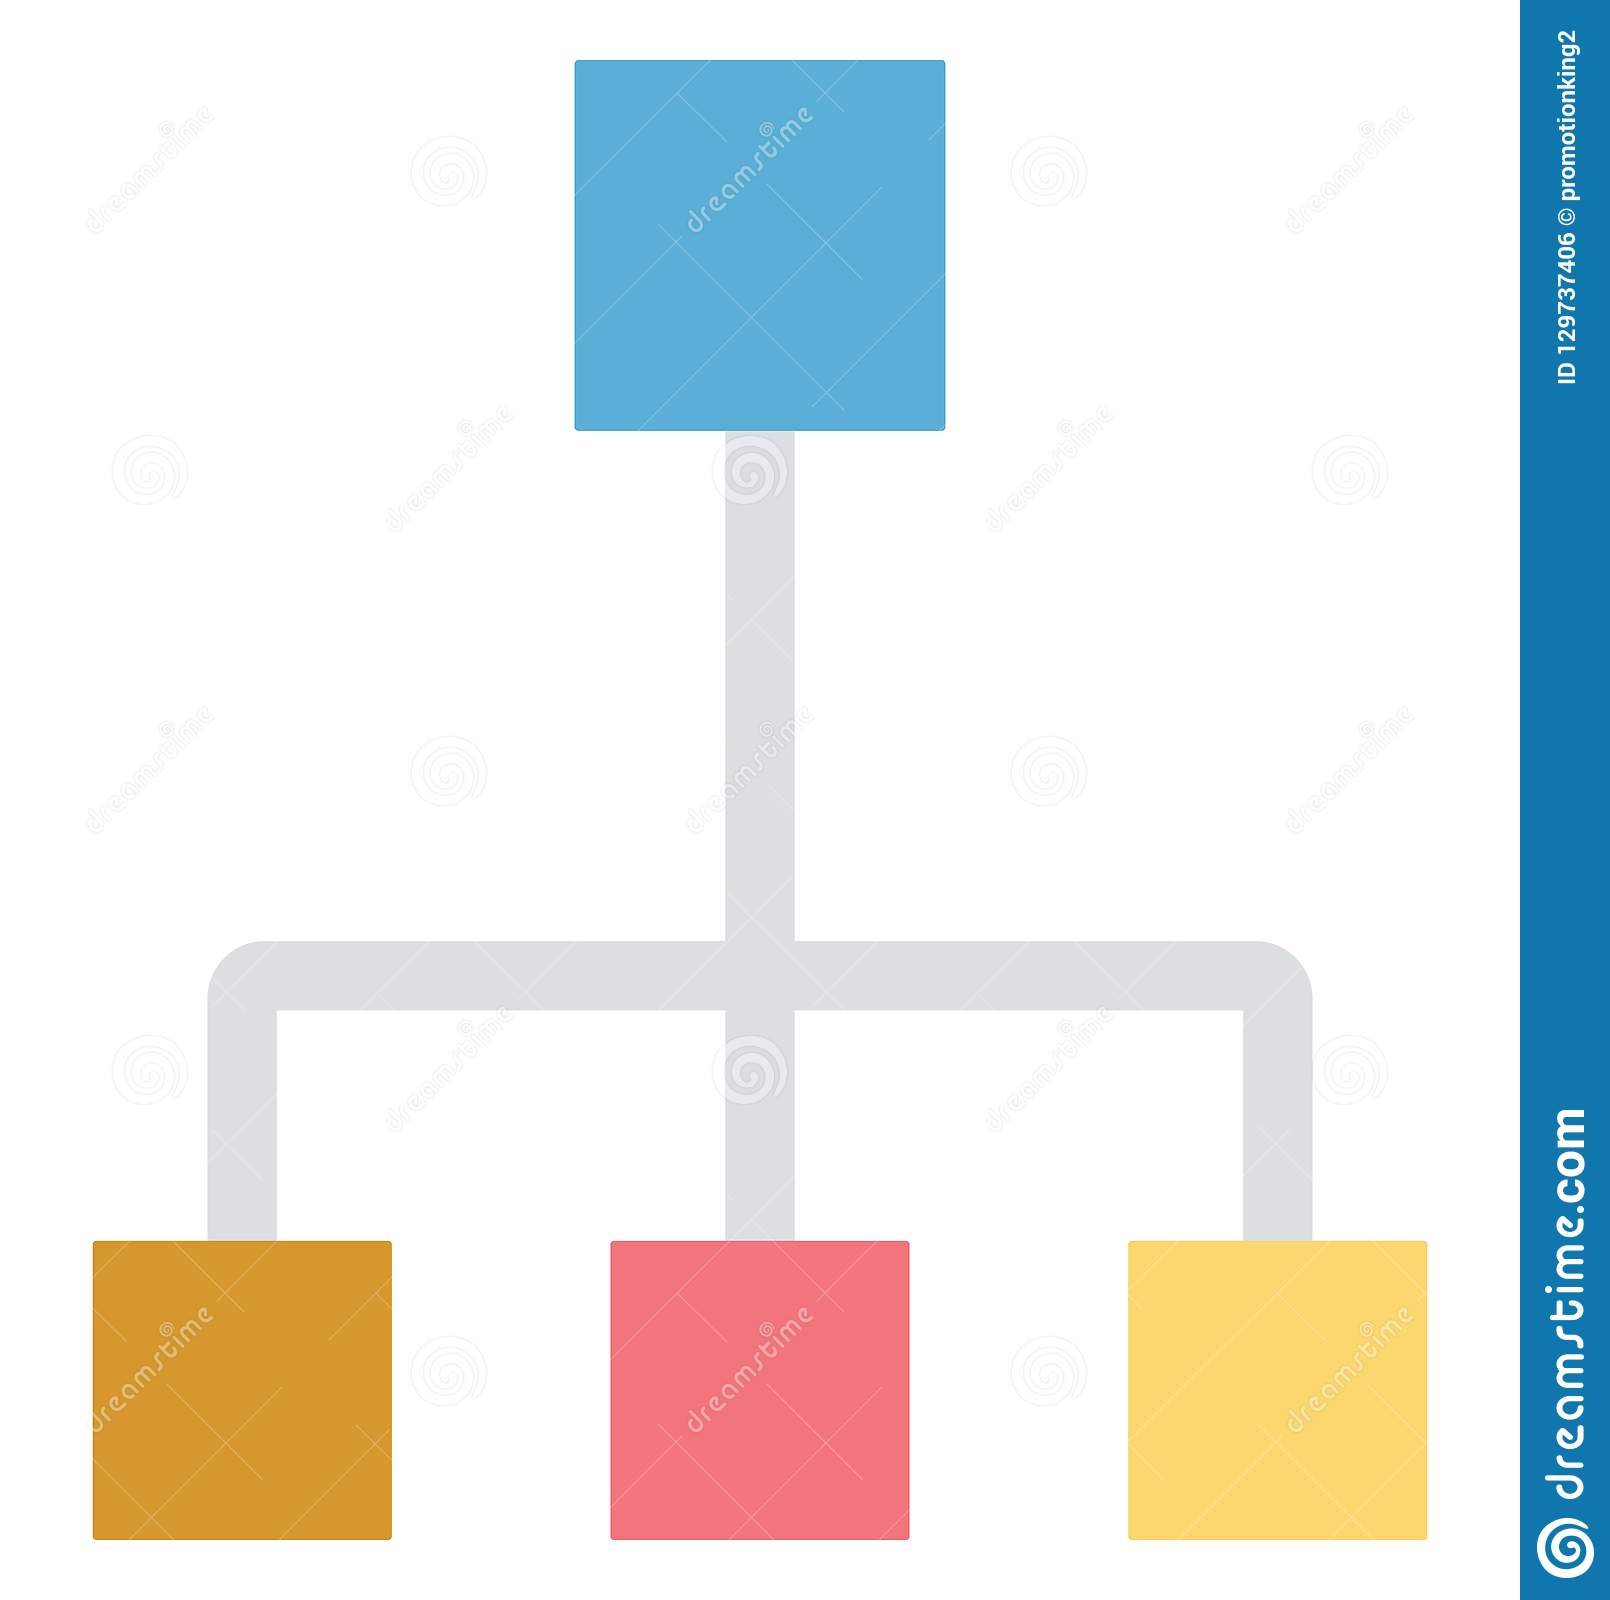 Hierarchy, network, Isolated Vector icons that can be easily modified or edit